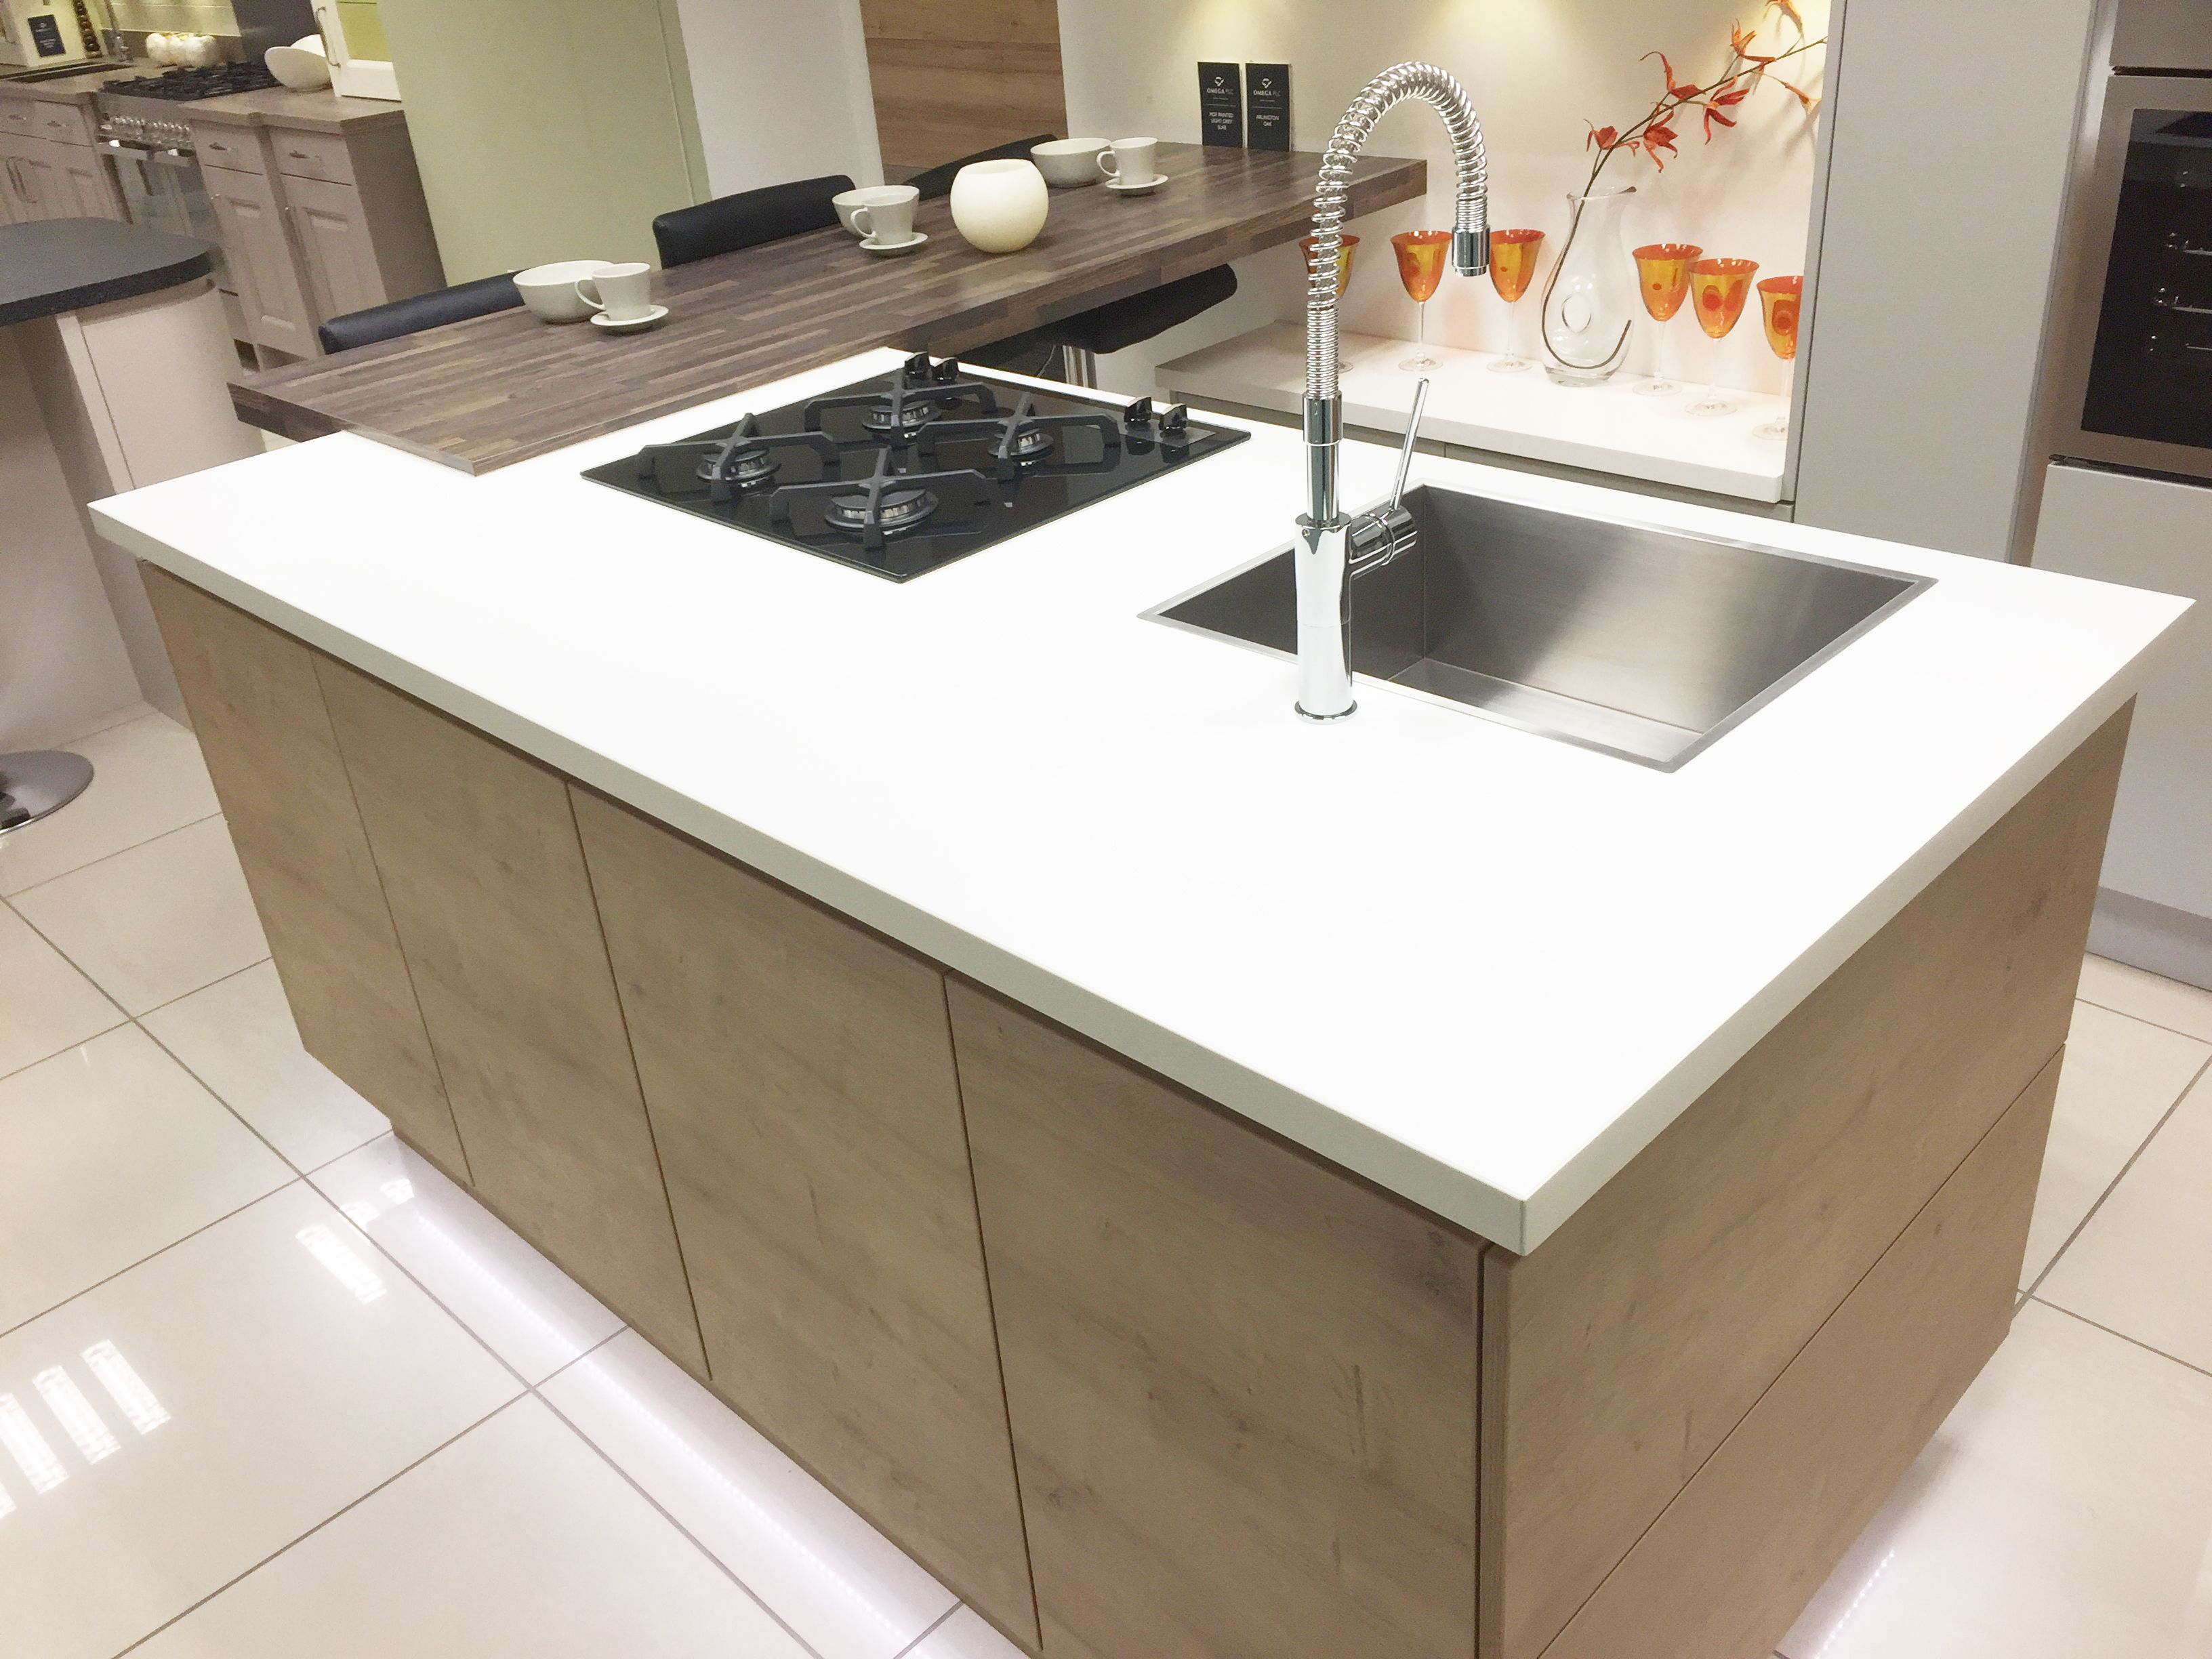 Modern kitchen island with hob sink and breakfast bar area www erkitchens co uk